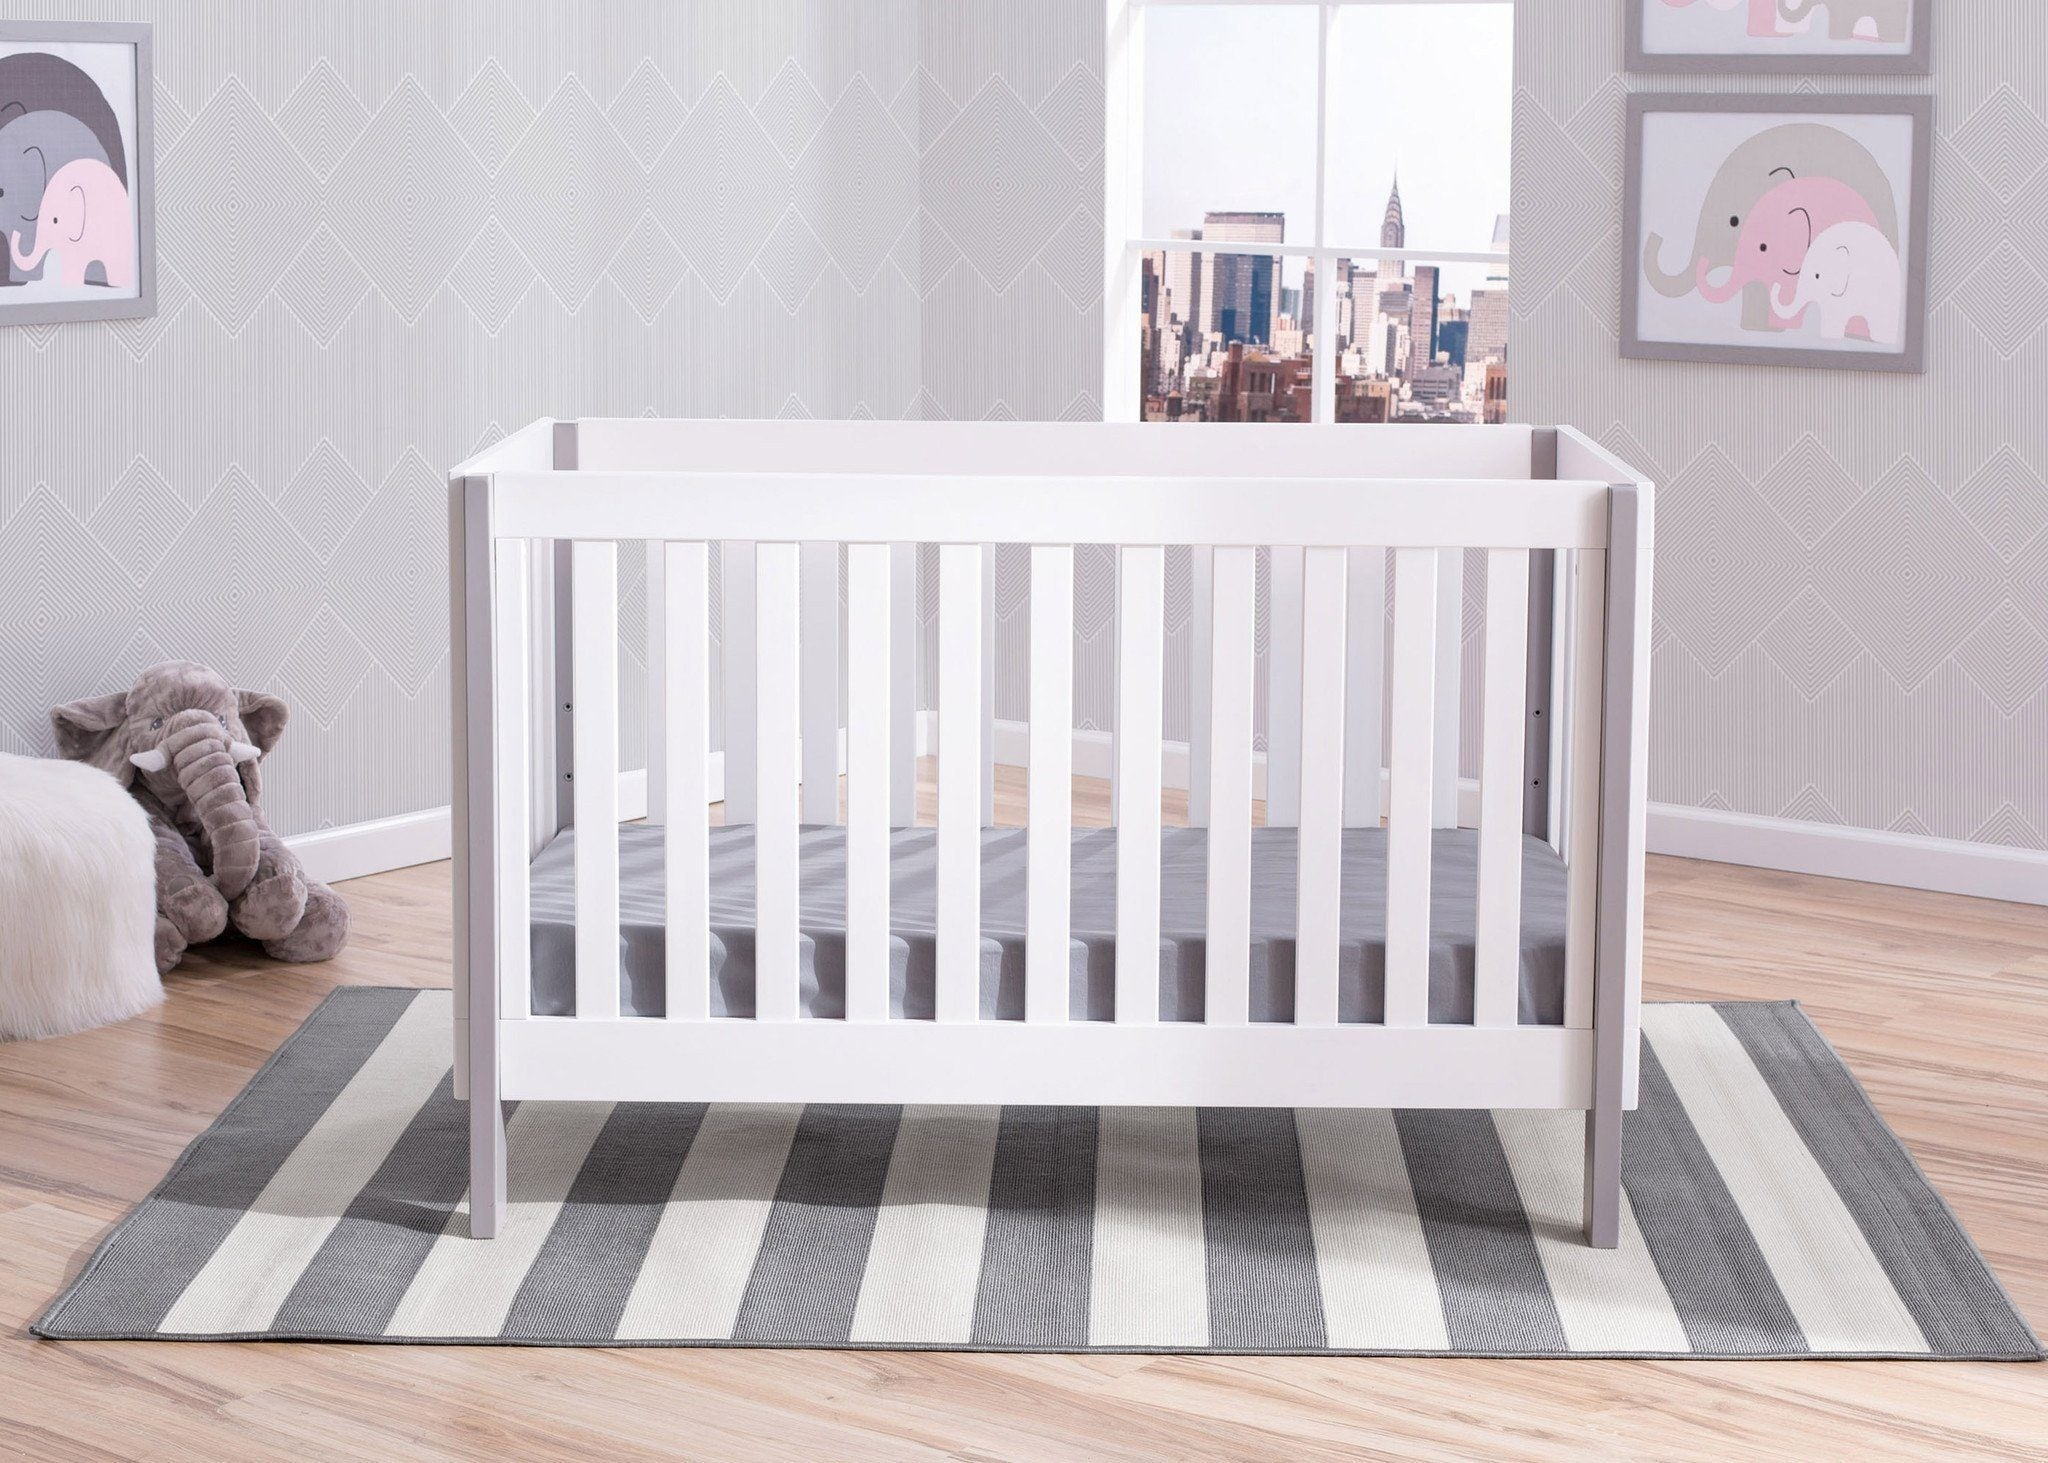 Delta Children Bianca with Grey (166) Bellevue 3-in-1 Crib, Hangtag b2b